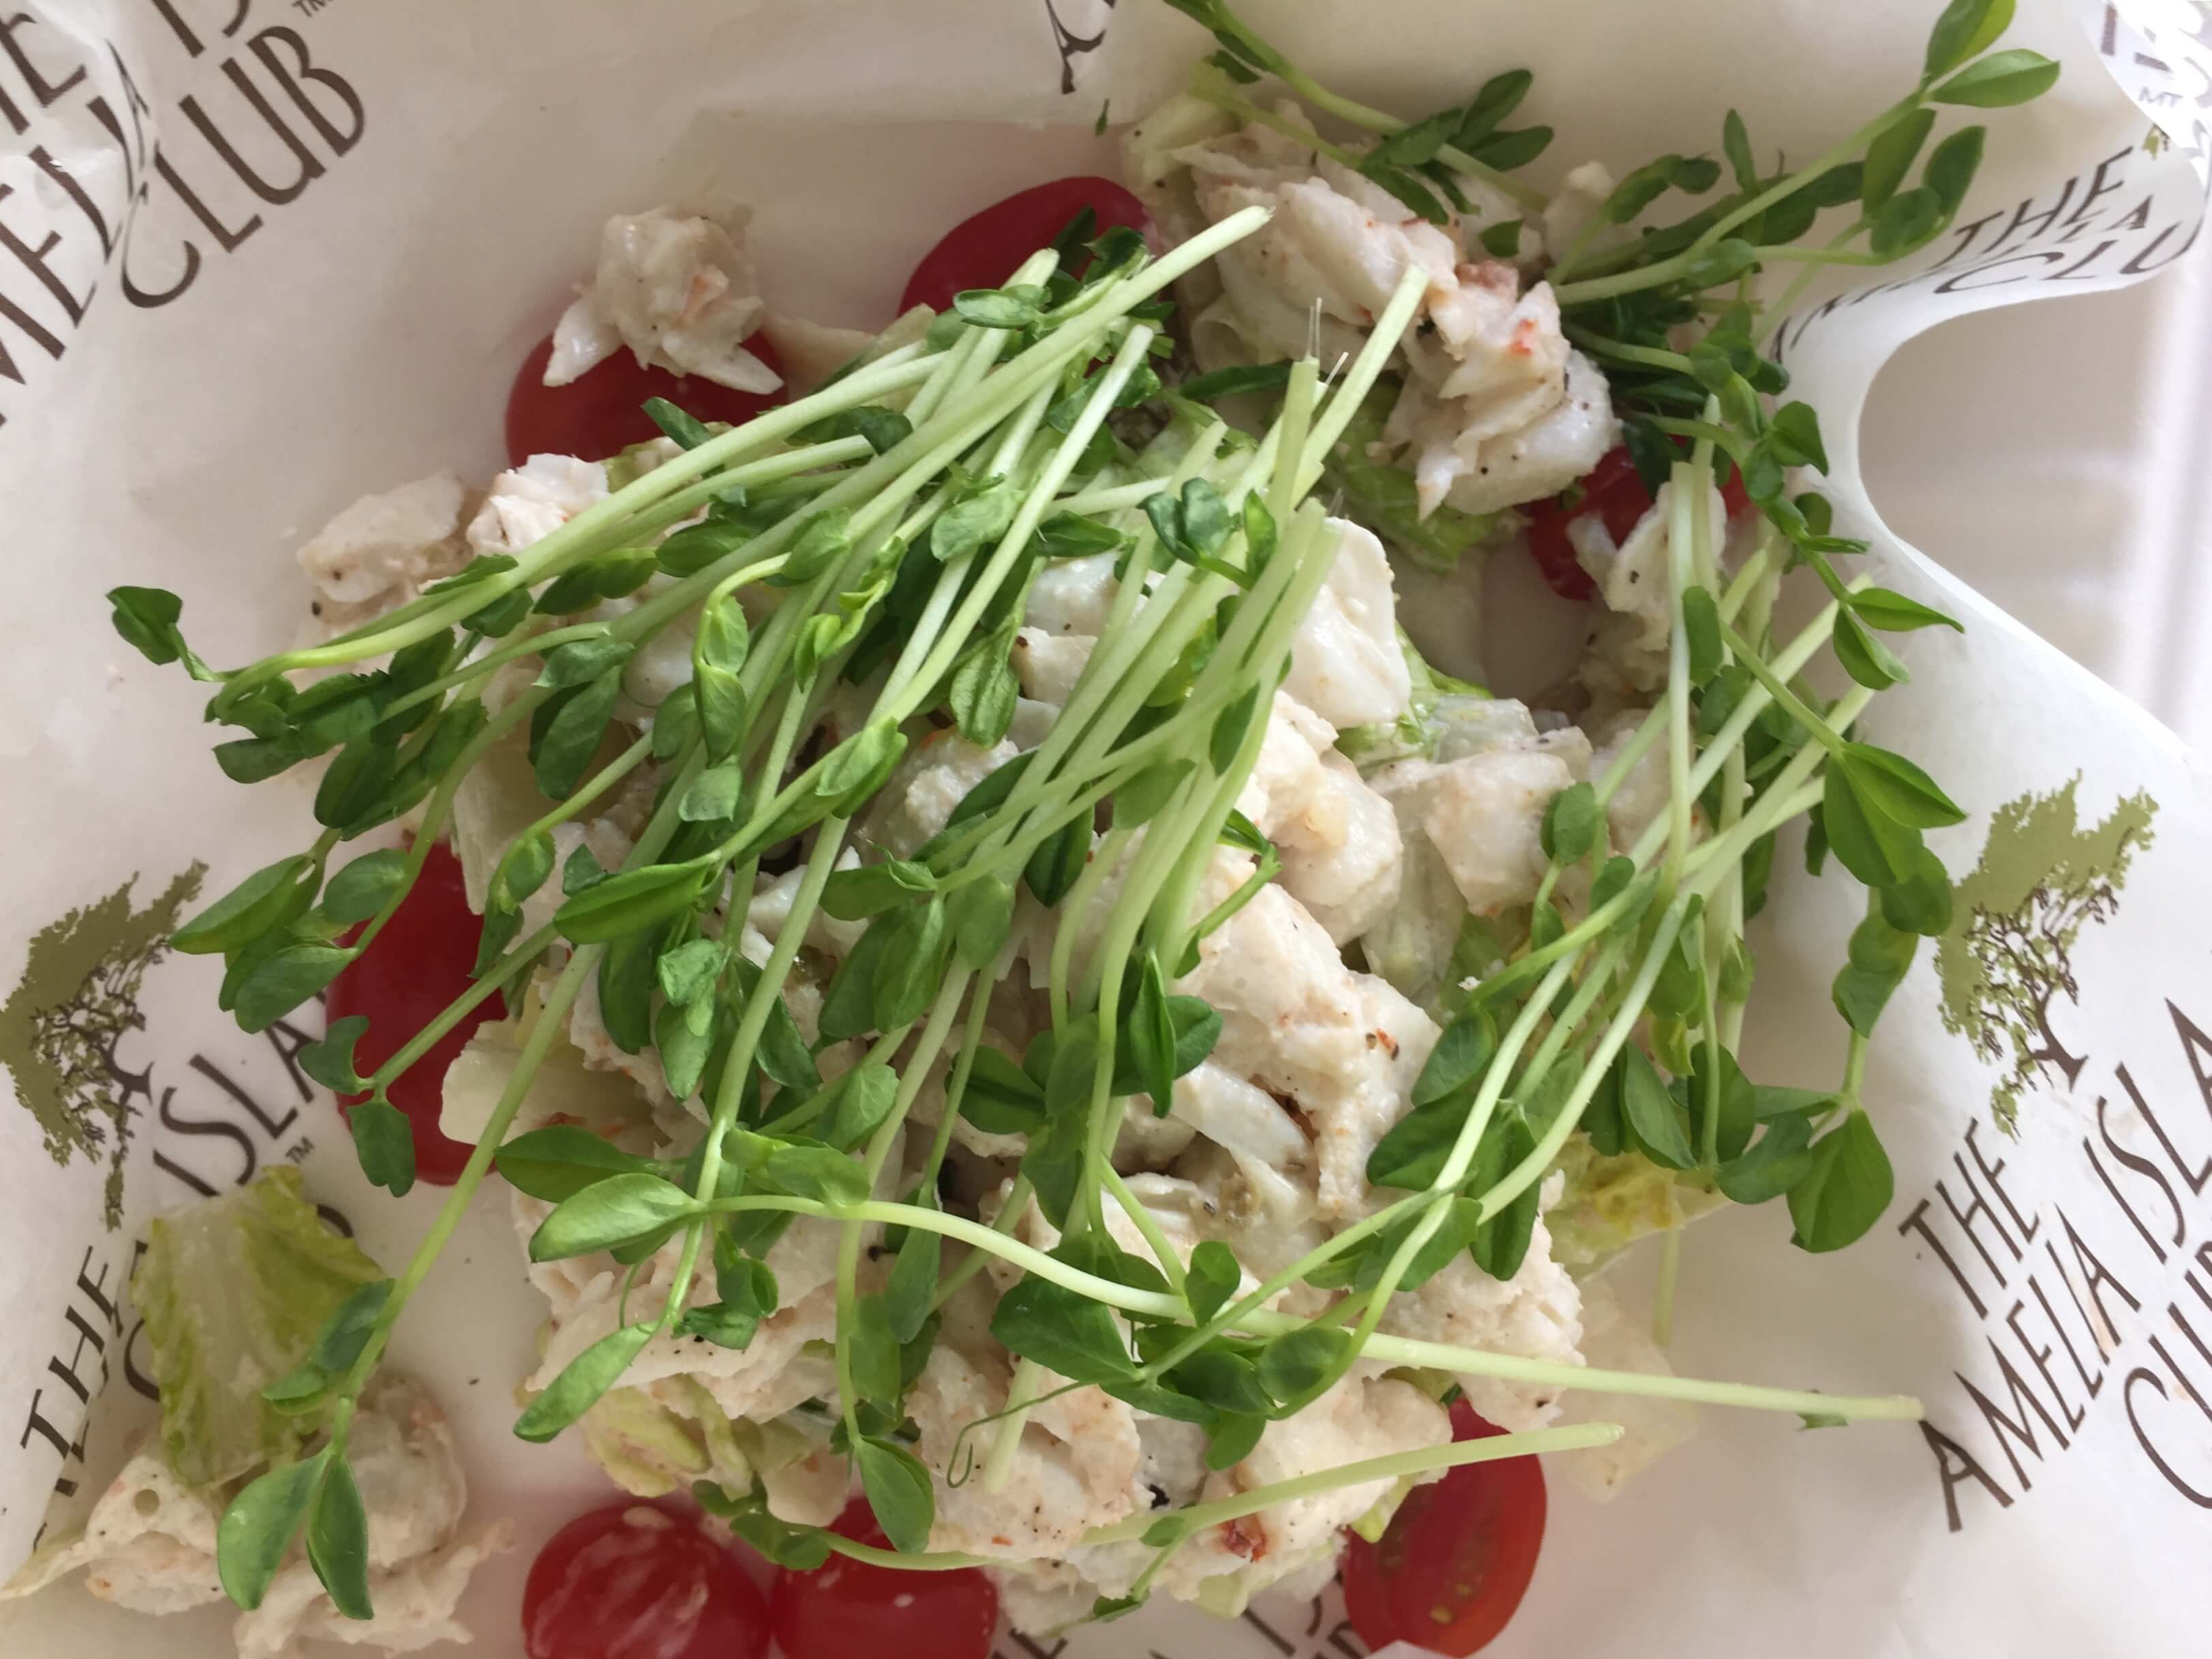 Lump Crab Salad from the Amelia Island Club photo by Kathy Miller